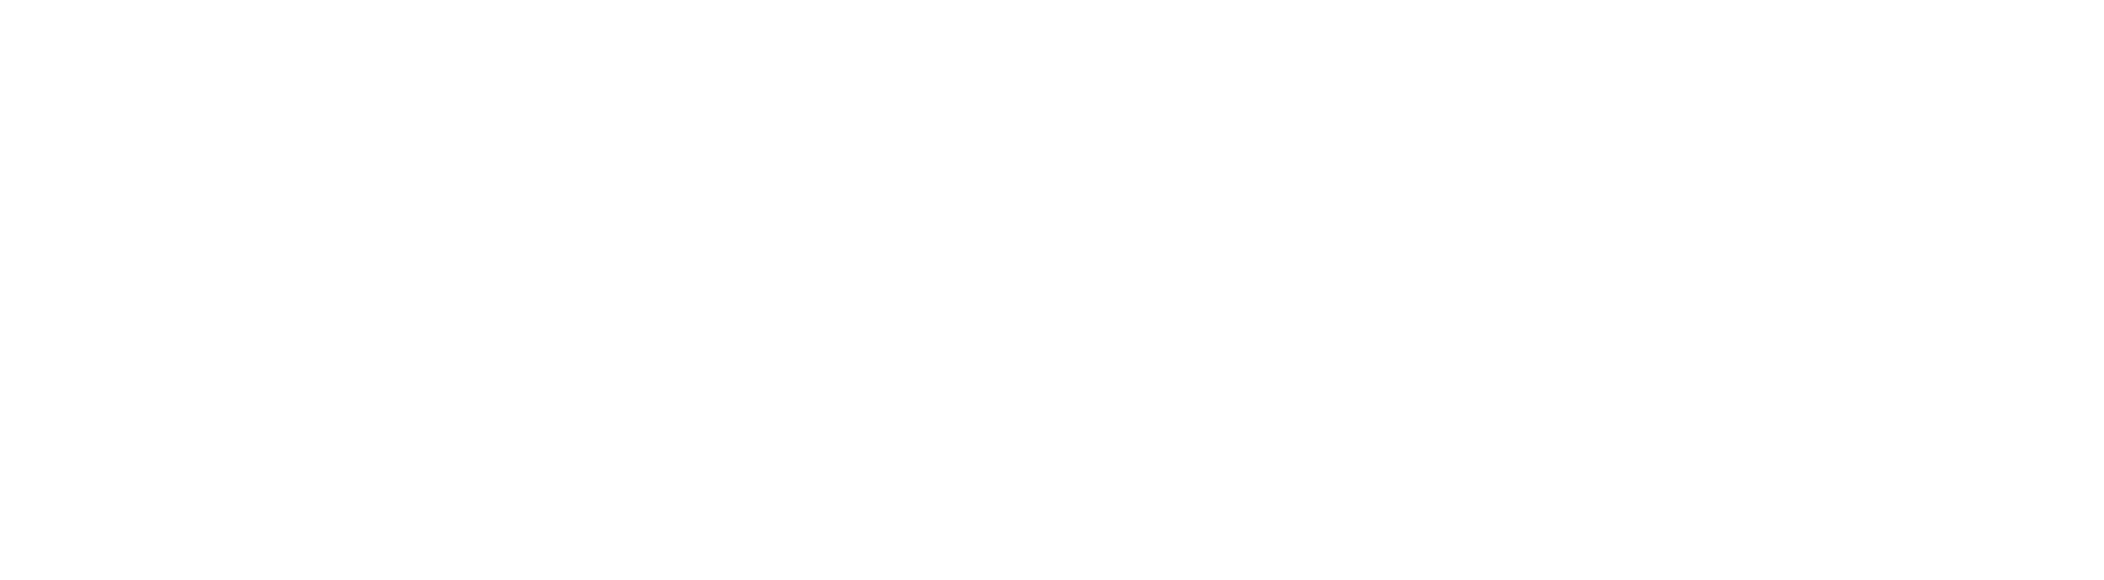 Outline drawing of a trout